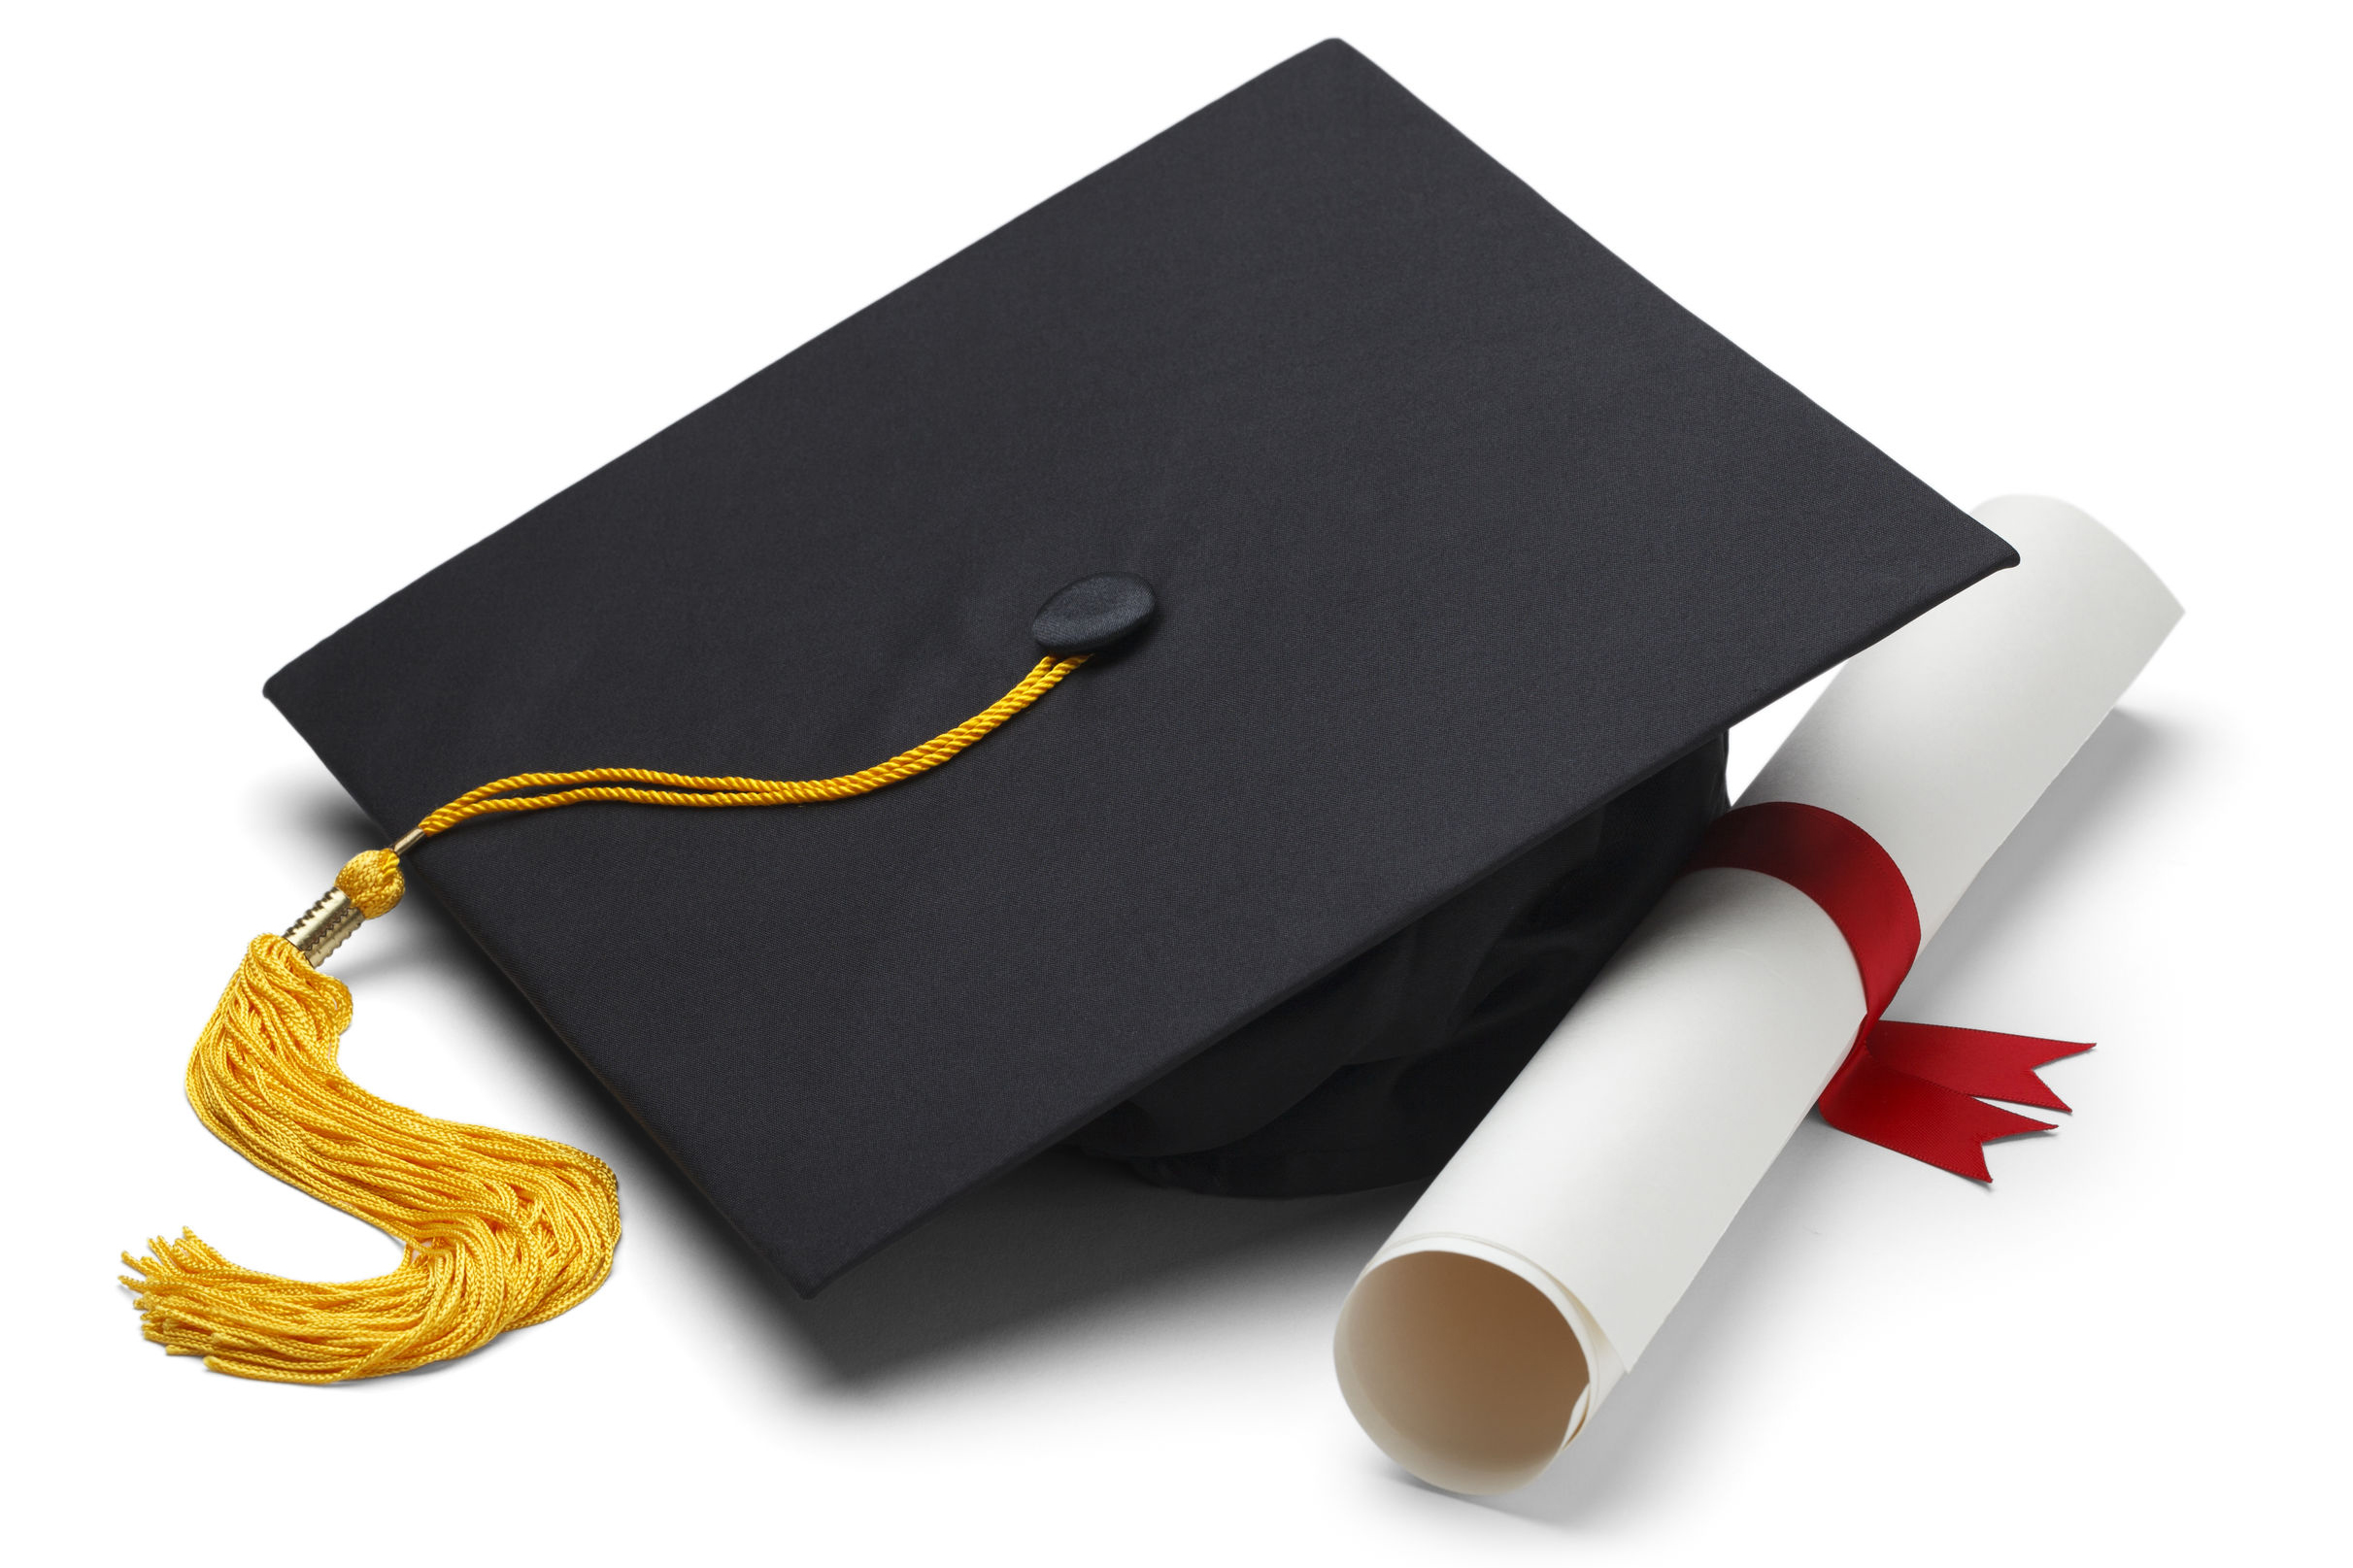 Smart system to prevent degree fraud